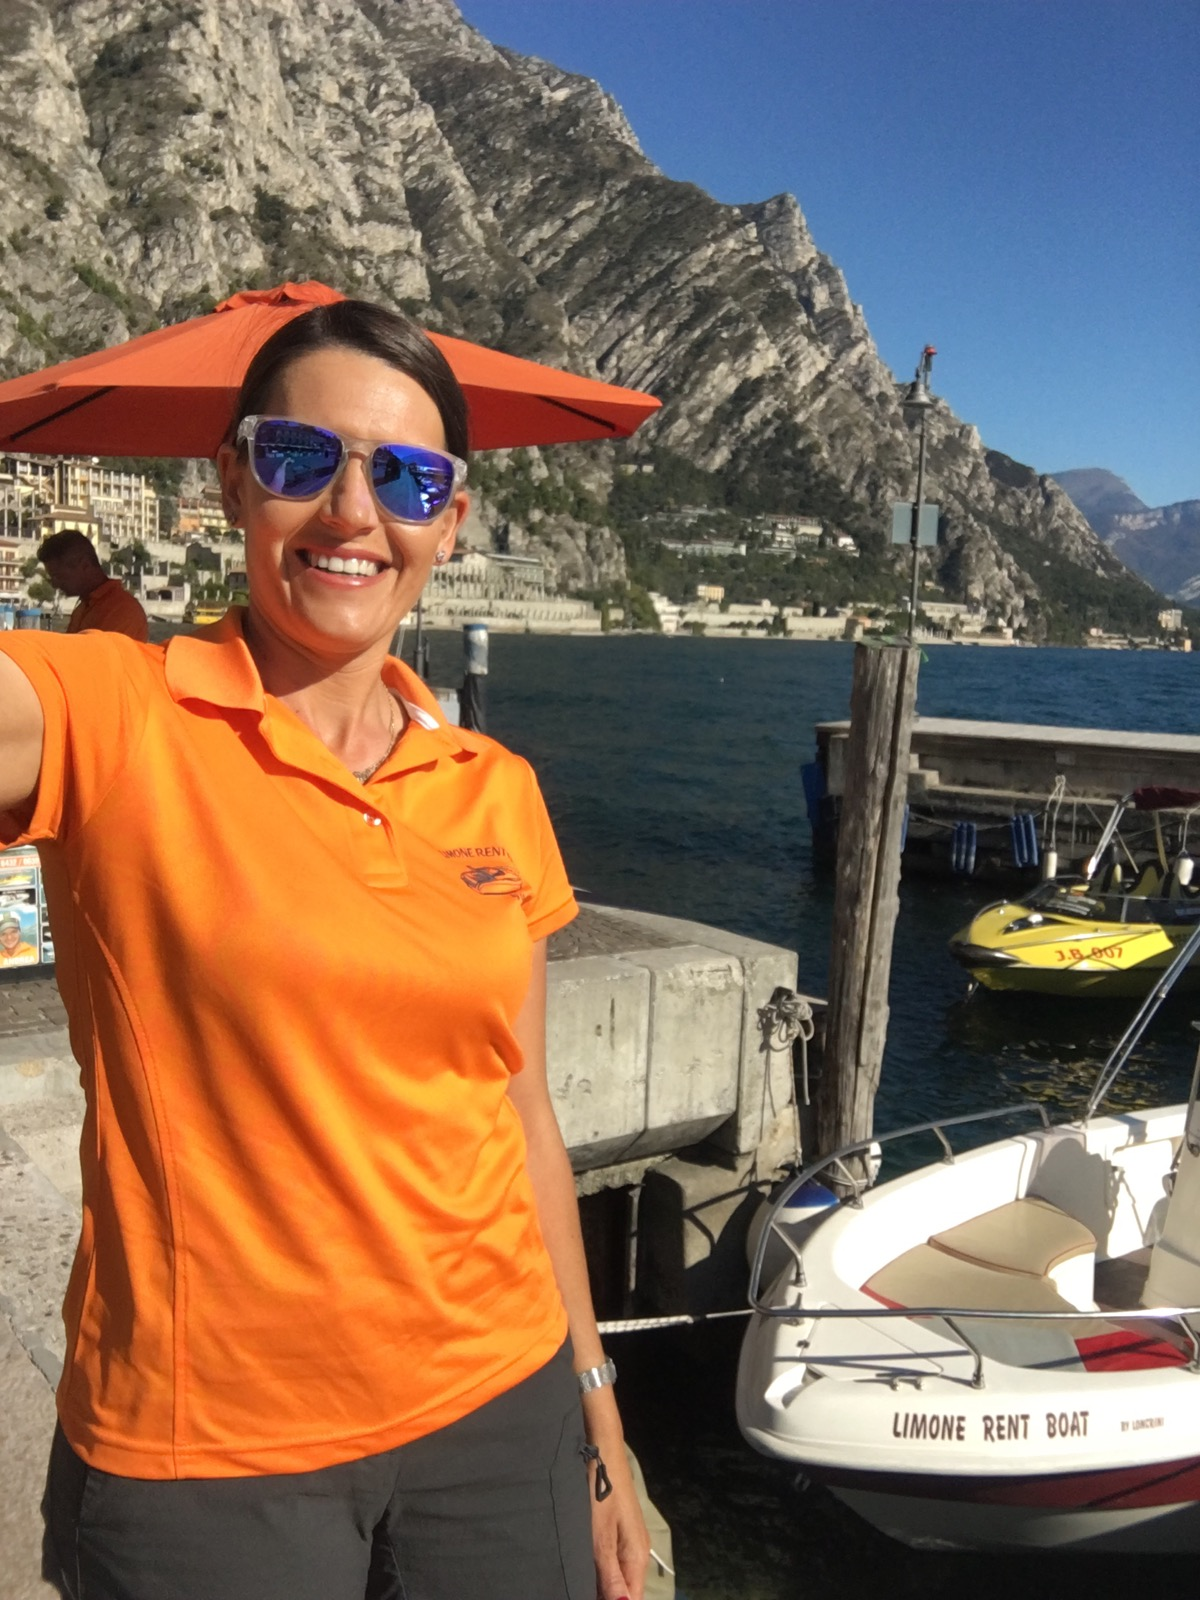 Amazing weather in Gardalake by Limone Rent Boat